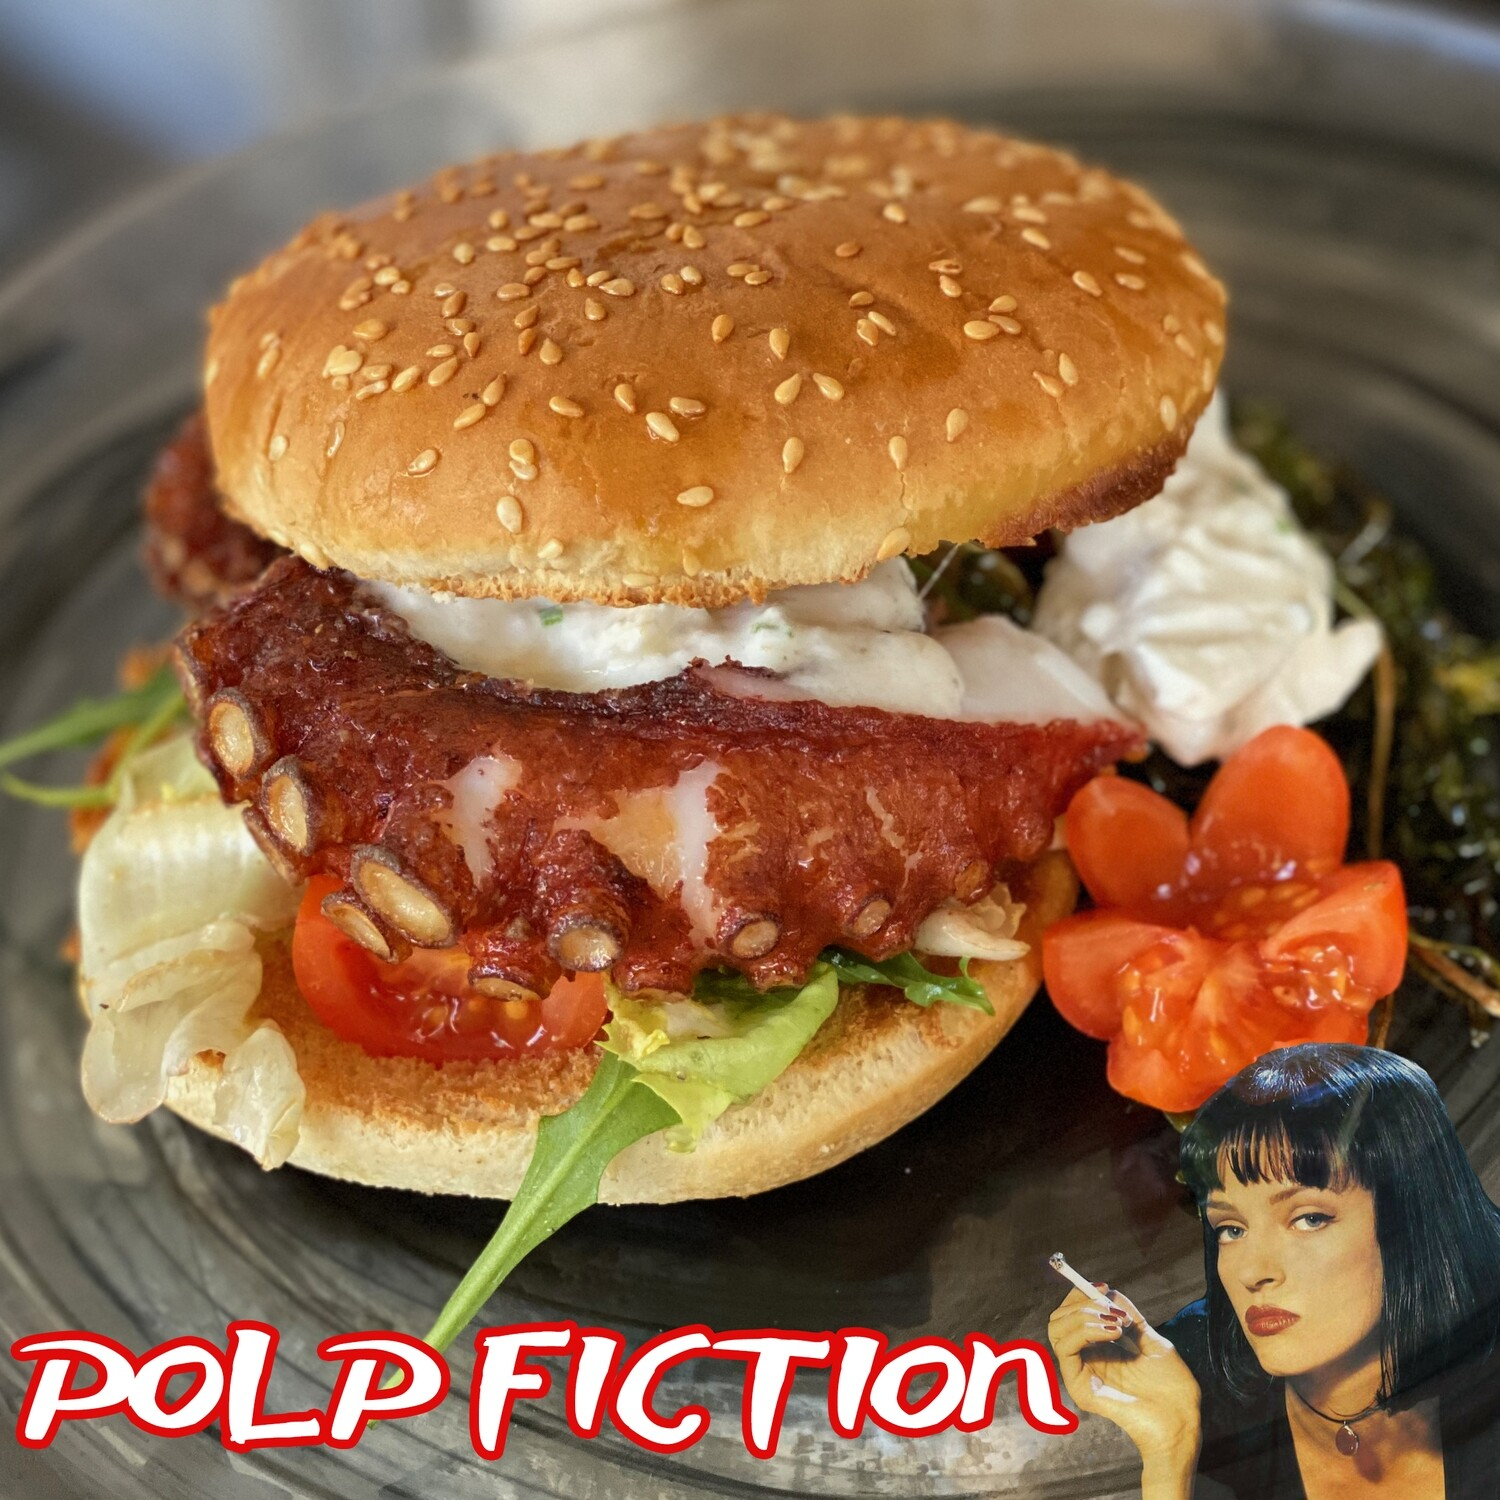 Polp Fiction